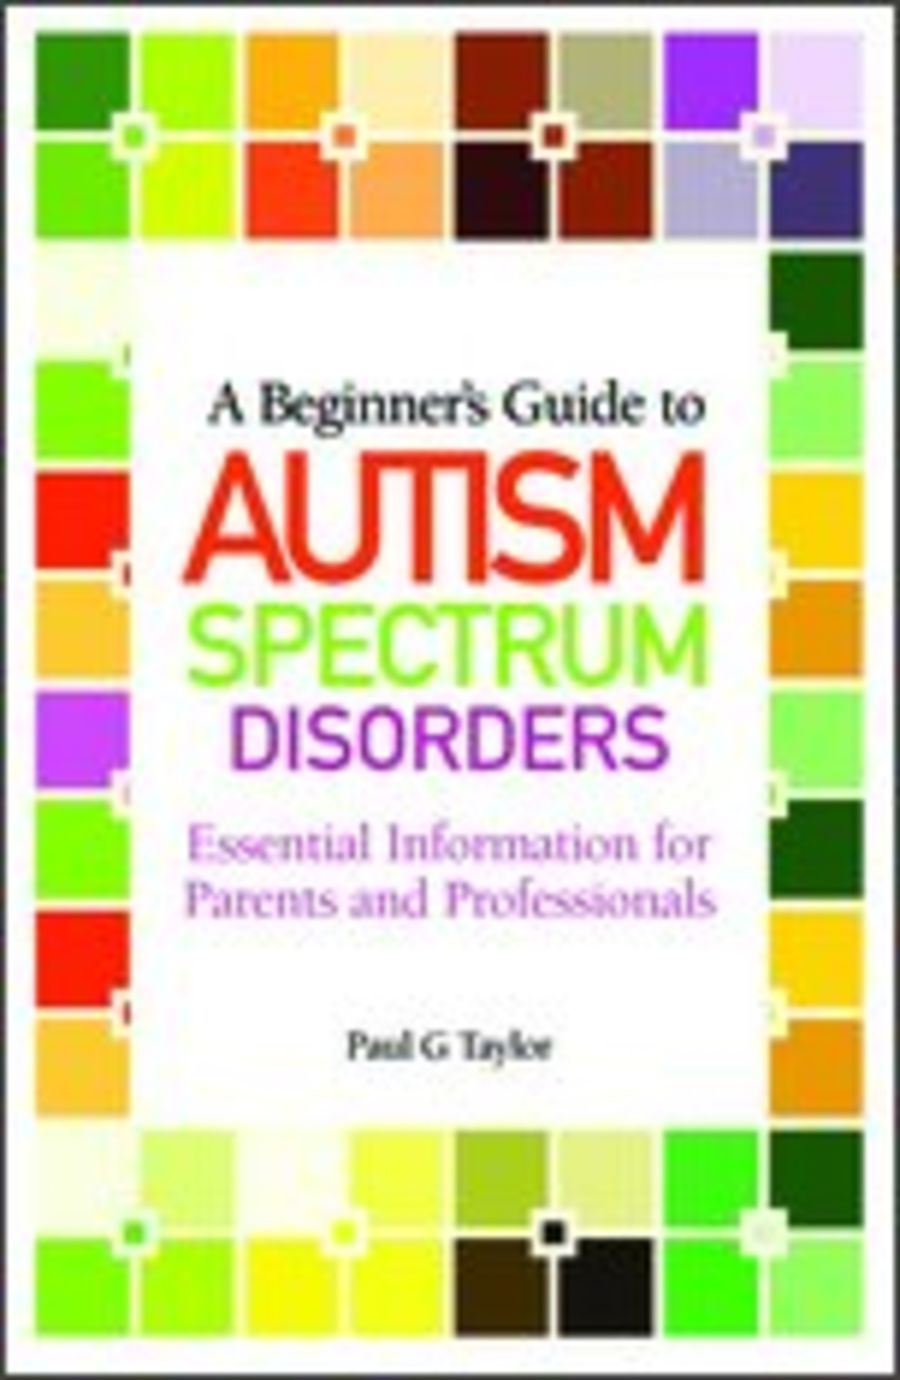 Essential Information for Parents and Professionals A Beginners Guide to Autism Spectrum Disorders